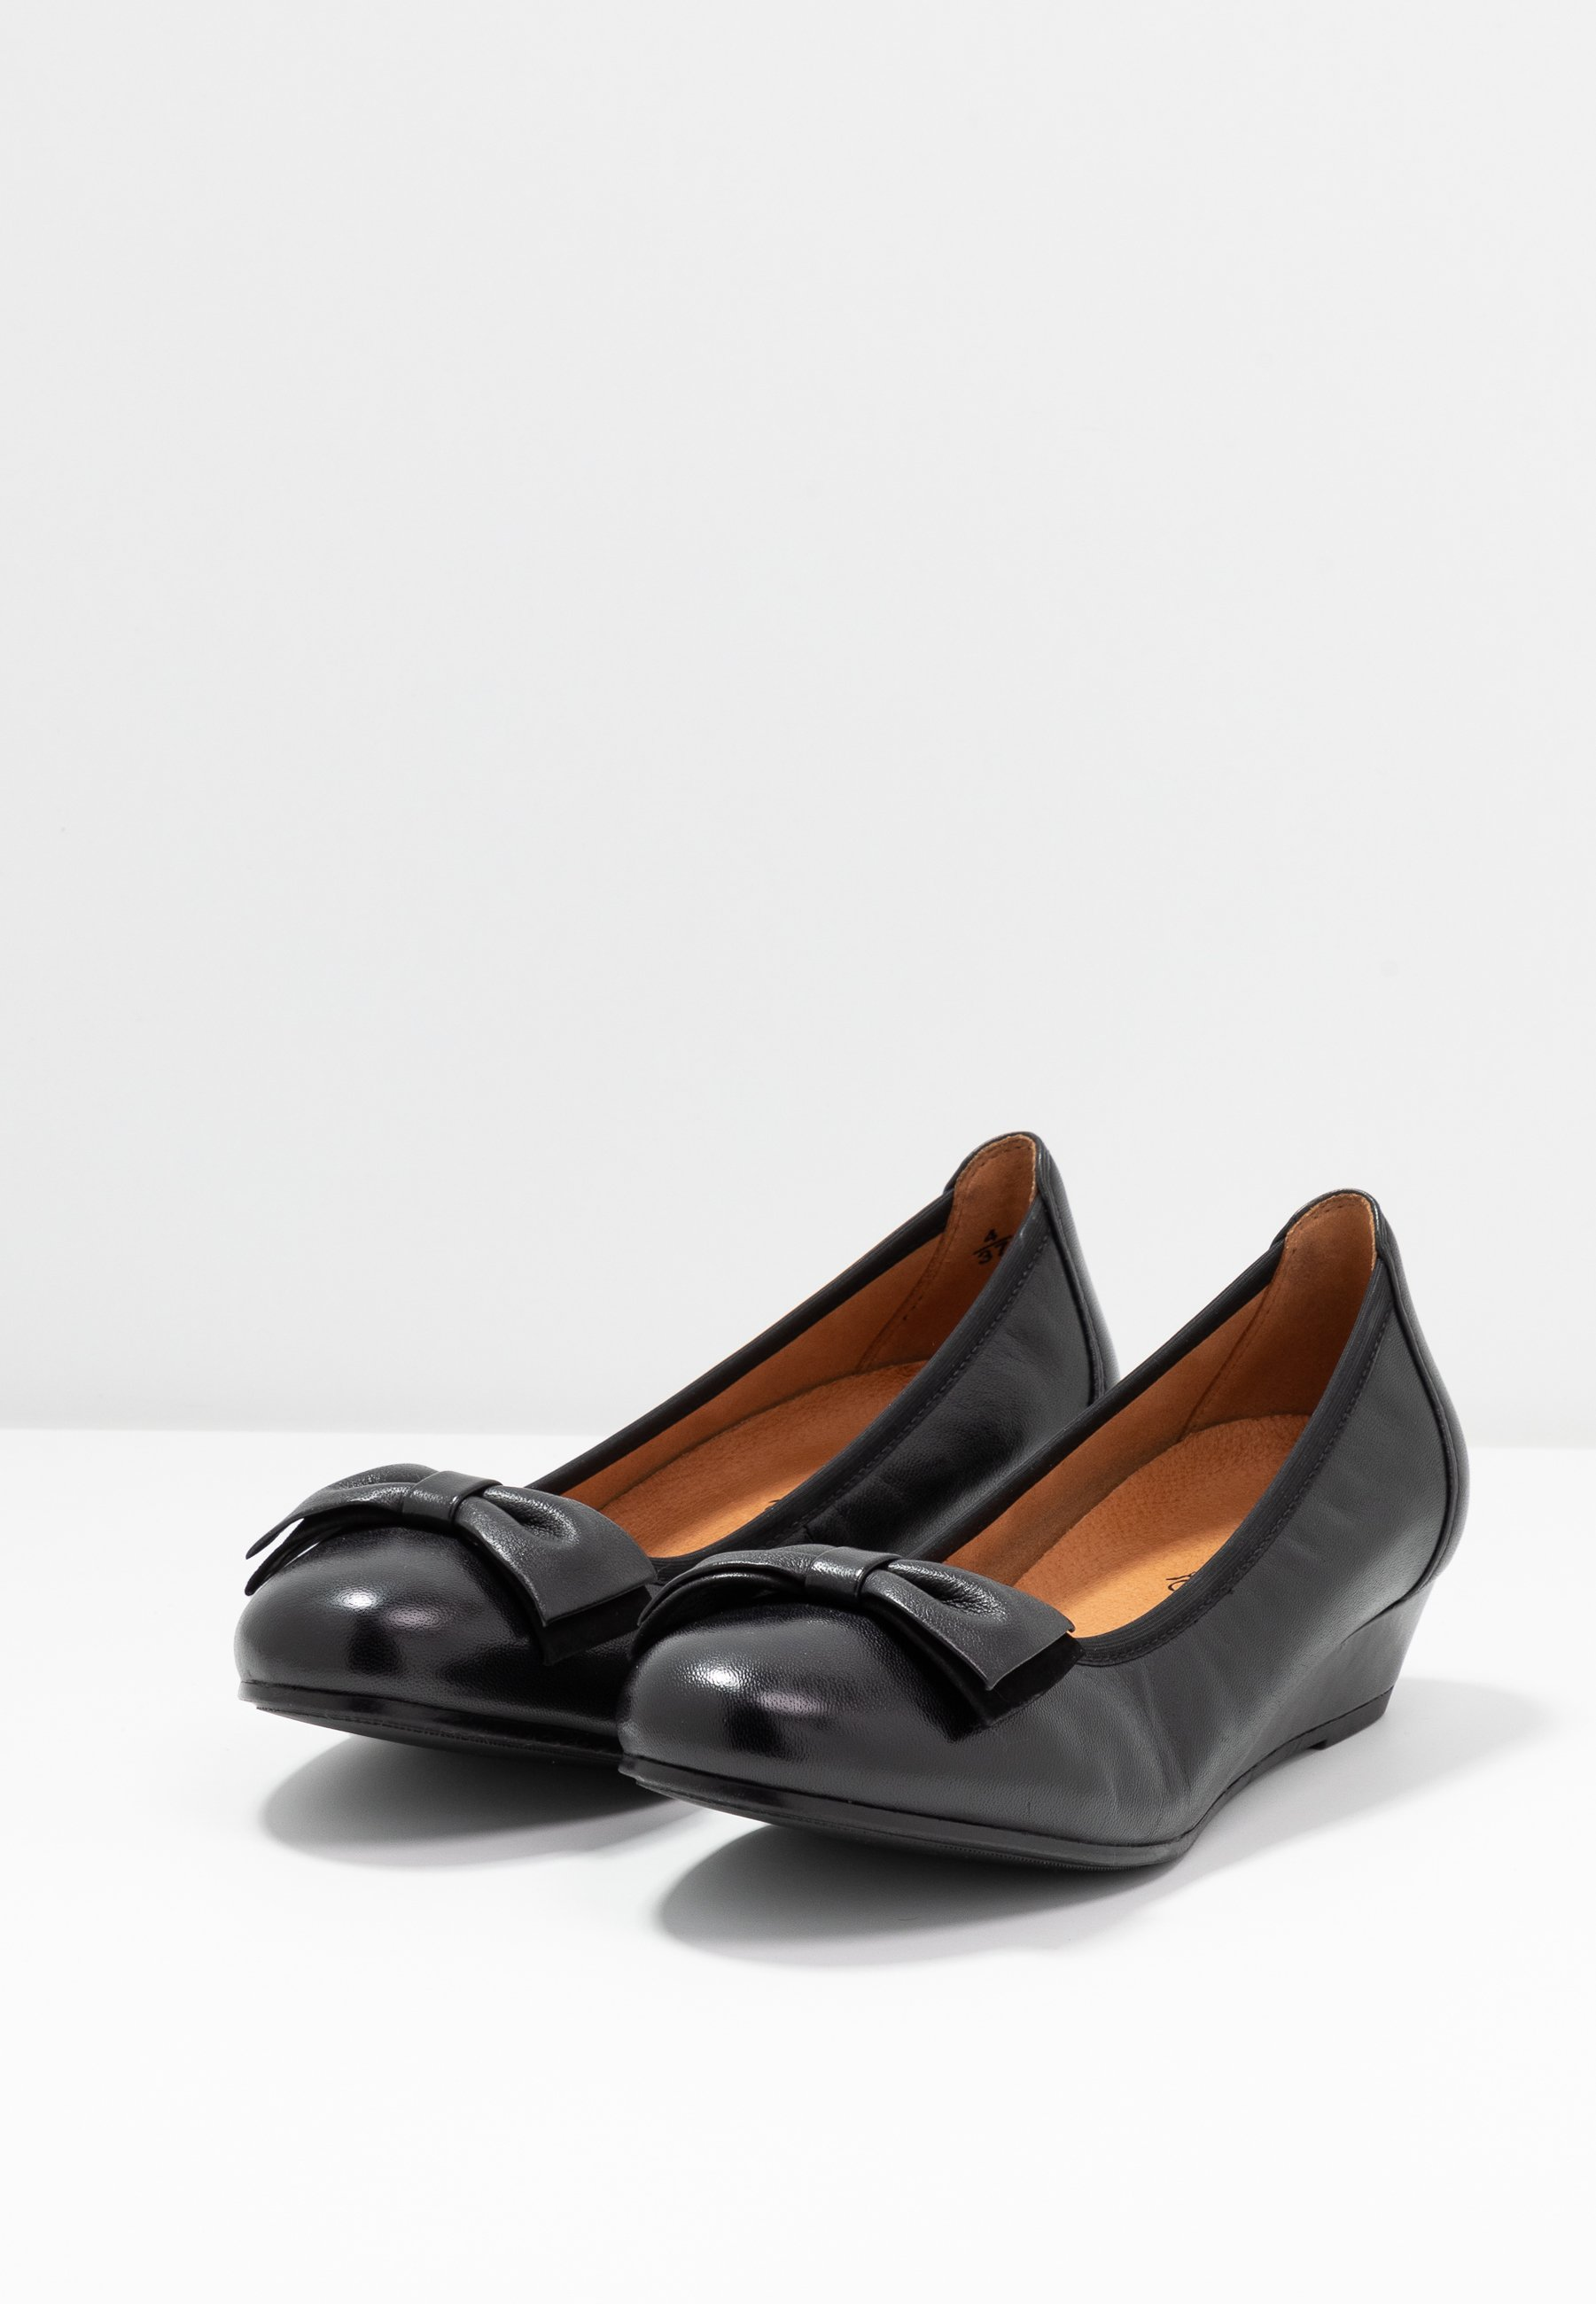 Caprice COURT SHOE Keilpumps black/schwarz